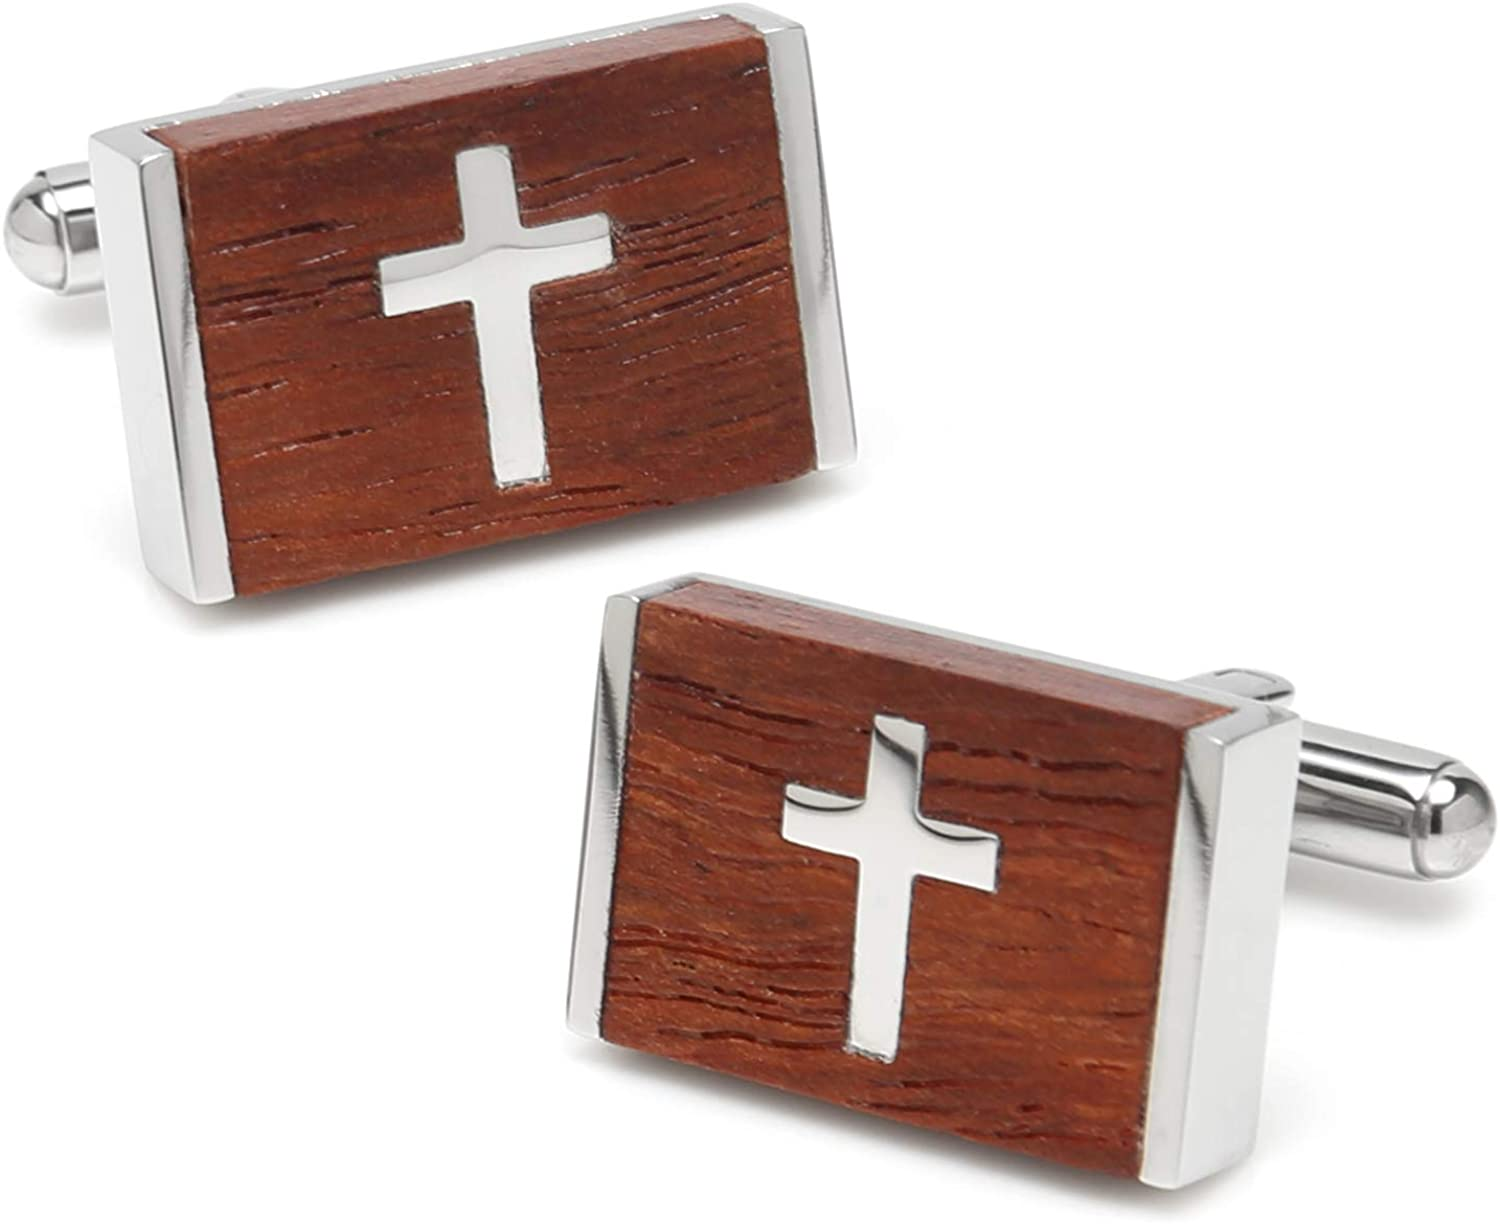 Ox and Bull Trading Co Cross Wood Stainless Steel Cufflinks